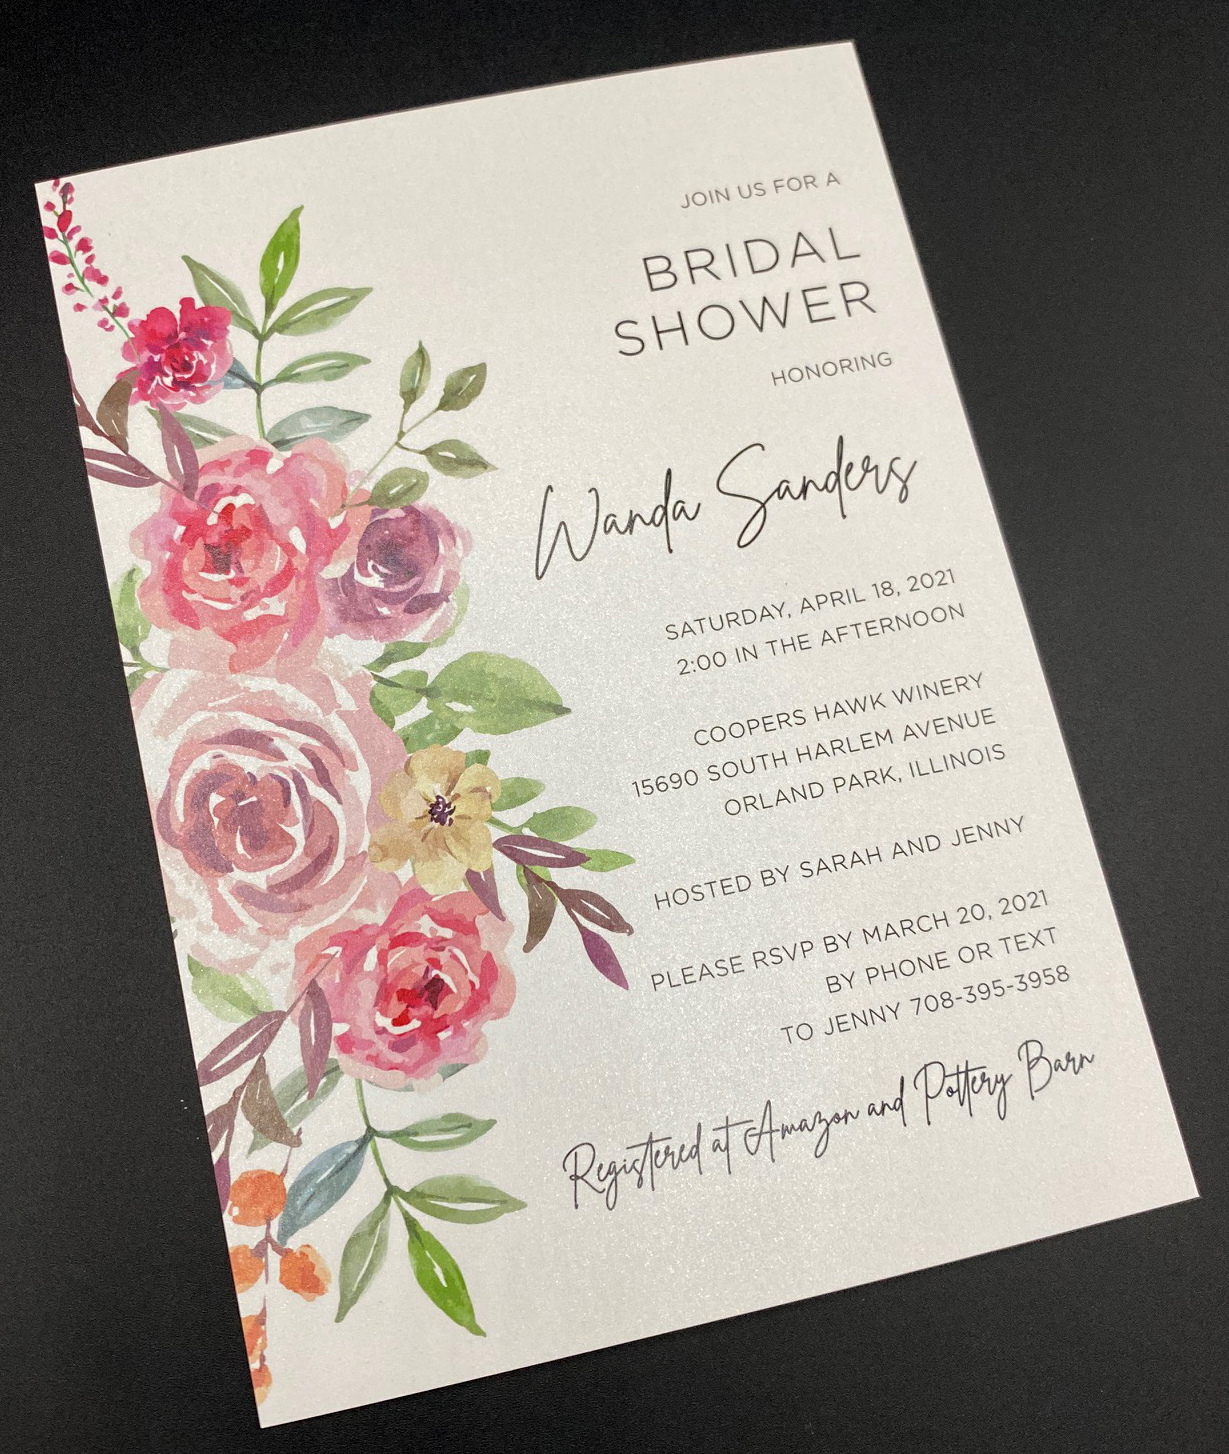 BridalShowerVerticalFlowers